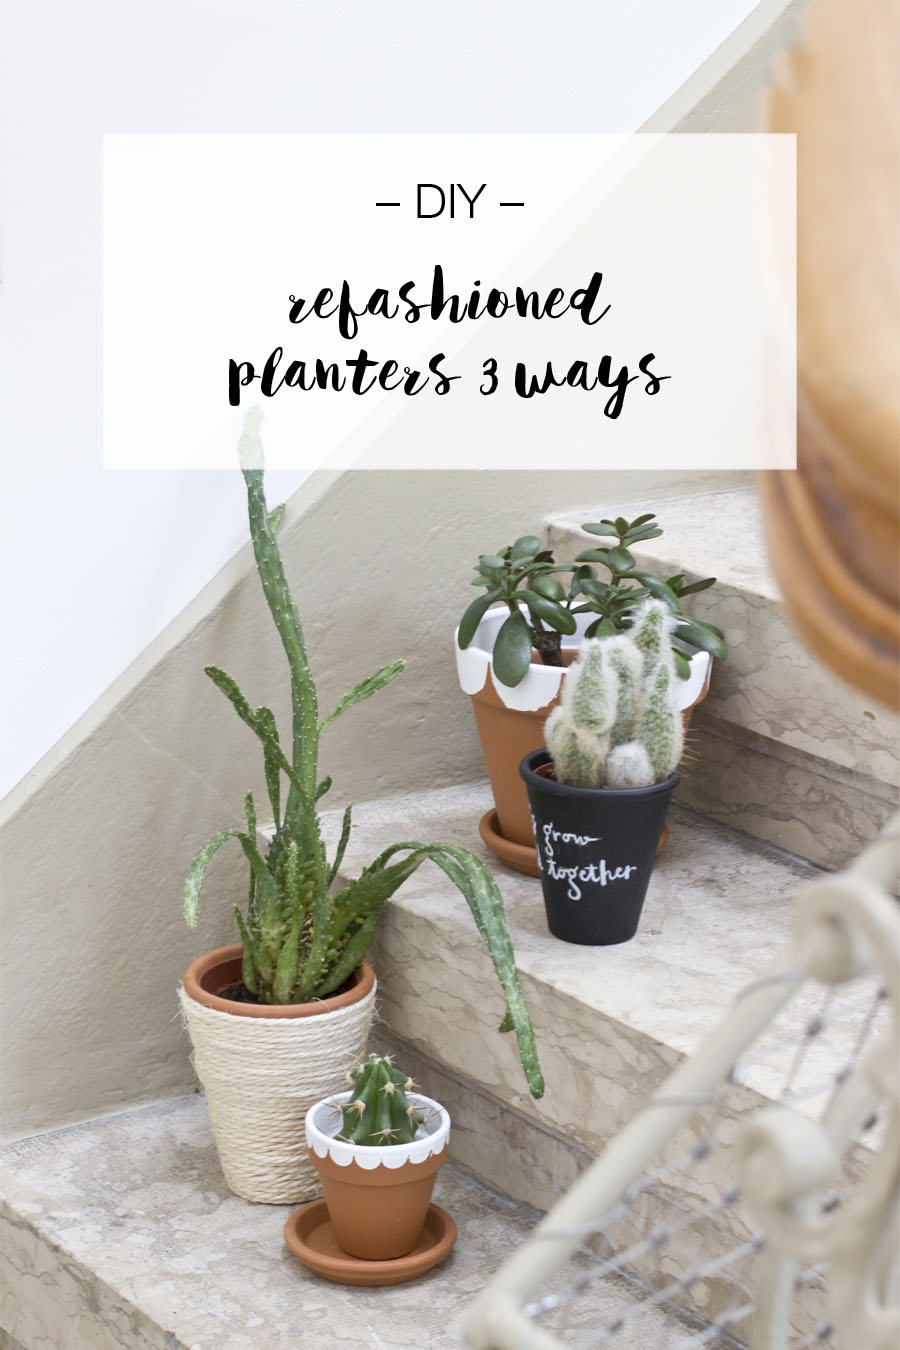 Restyle planters 3 ways | LOOK WHAT I MADE ...